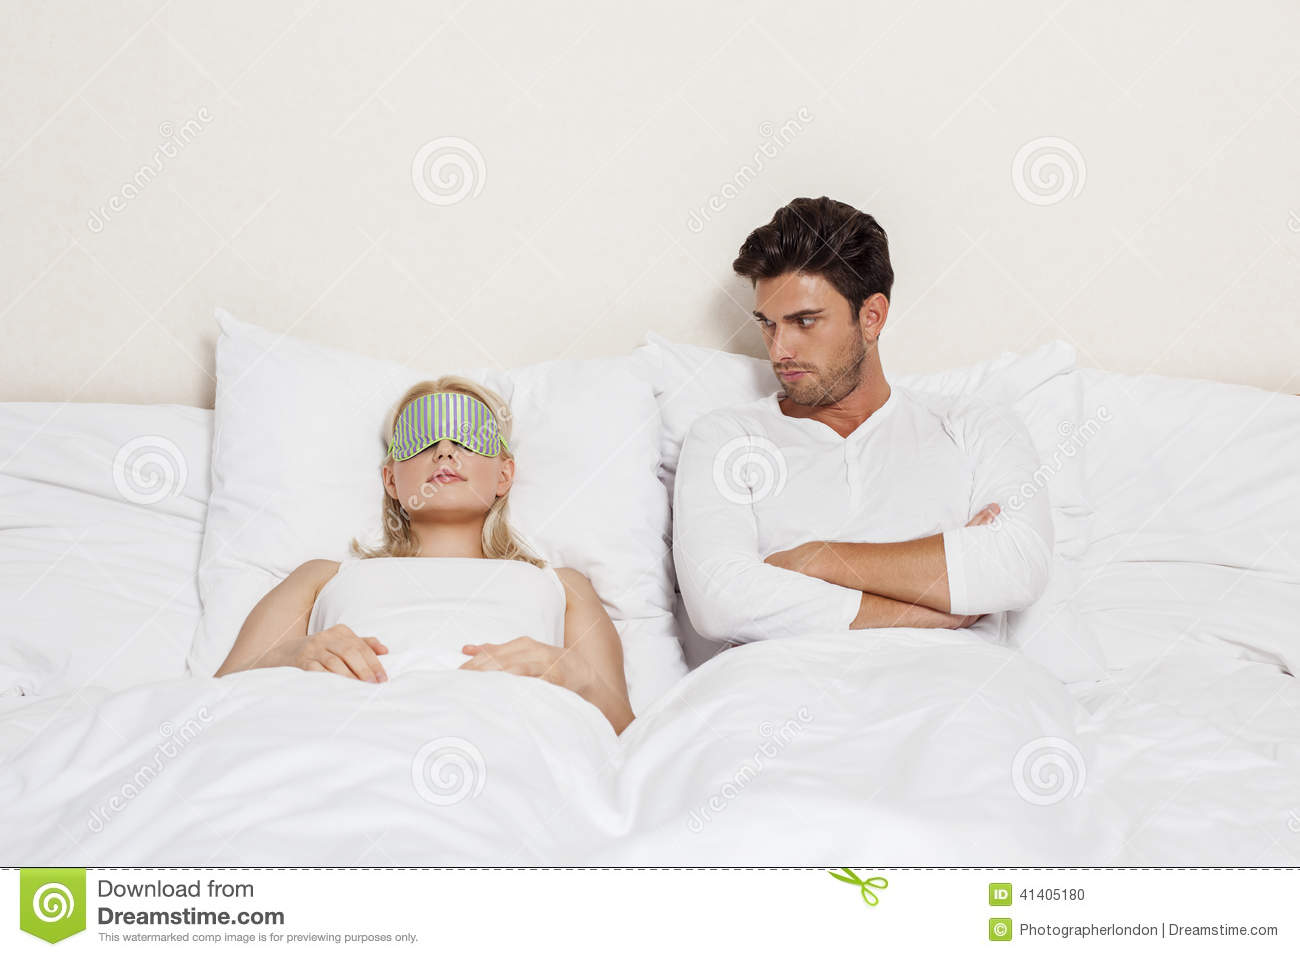 Remarkable, old man with young women in bed